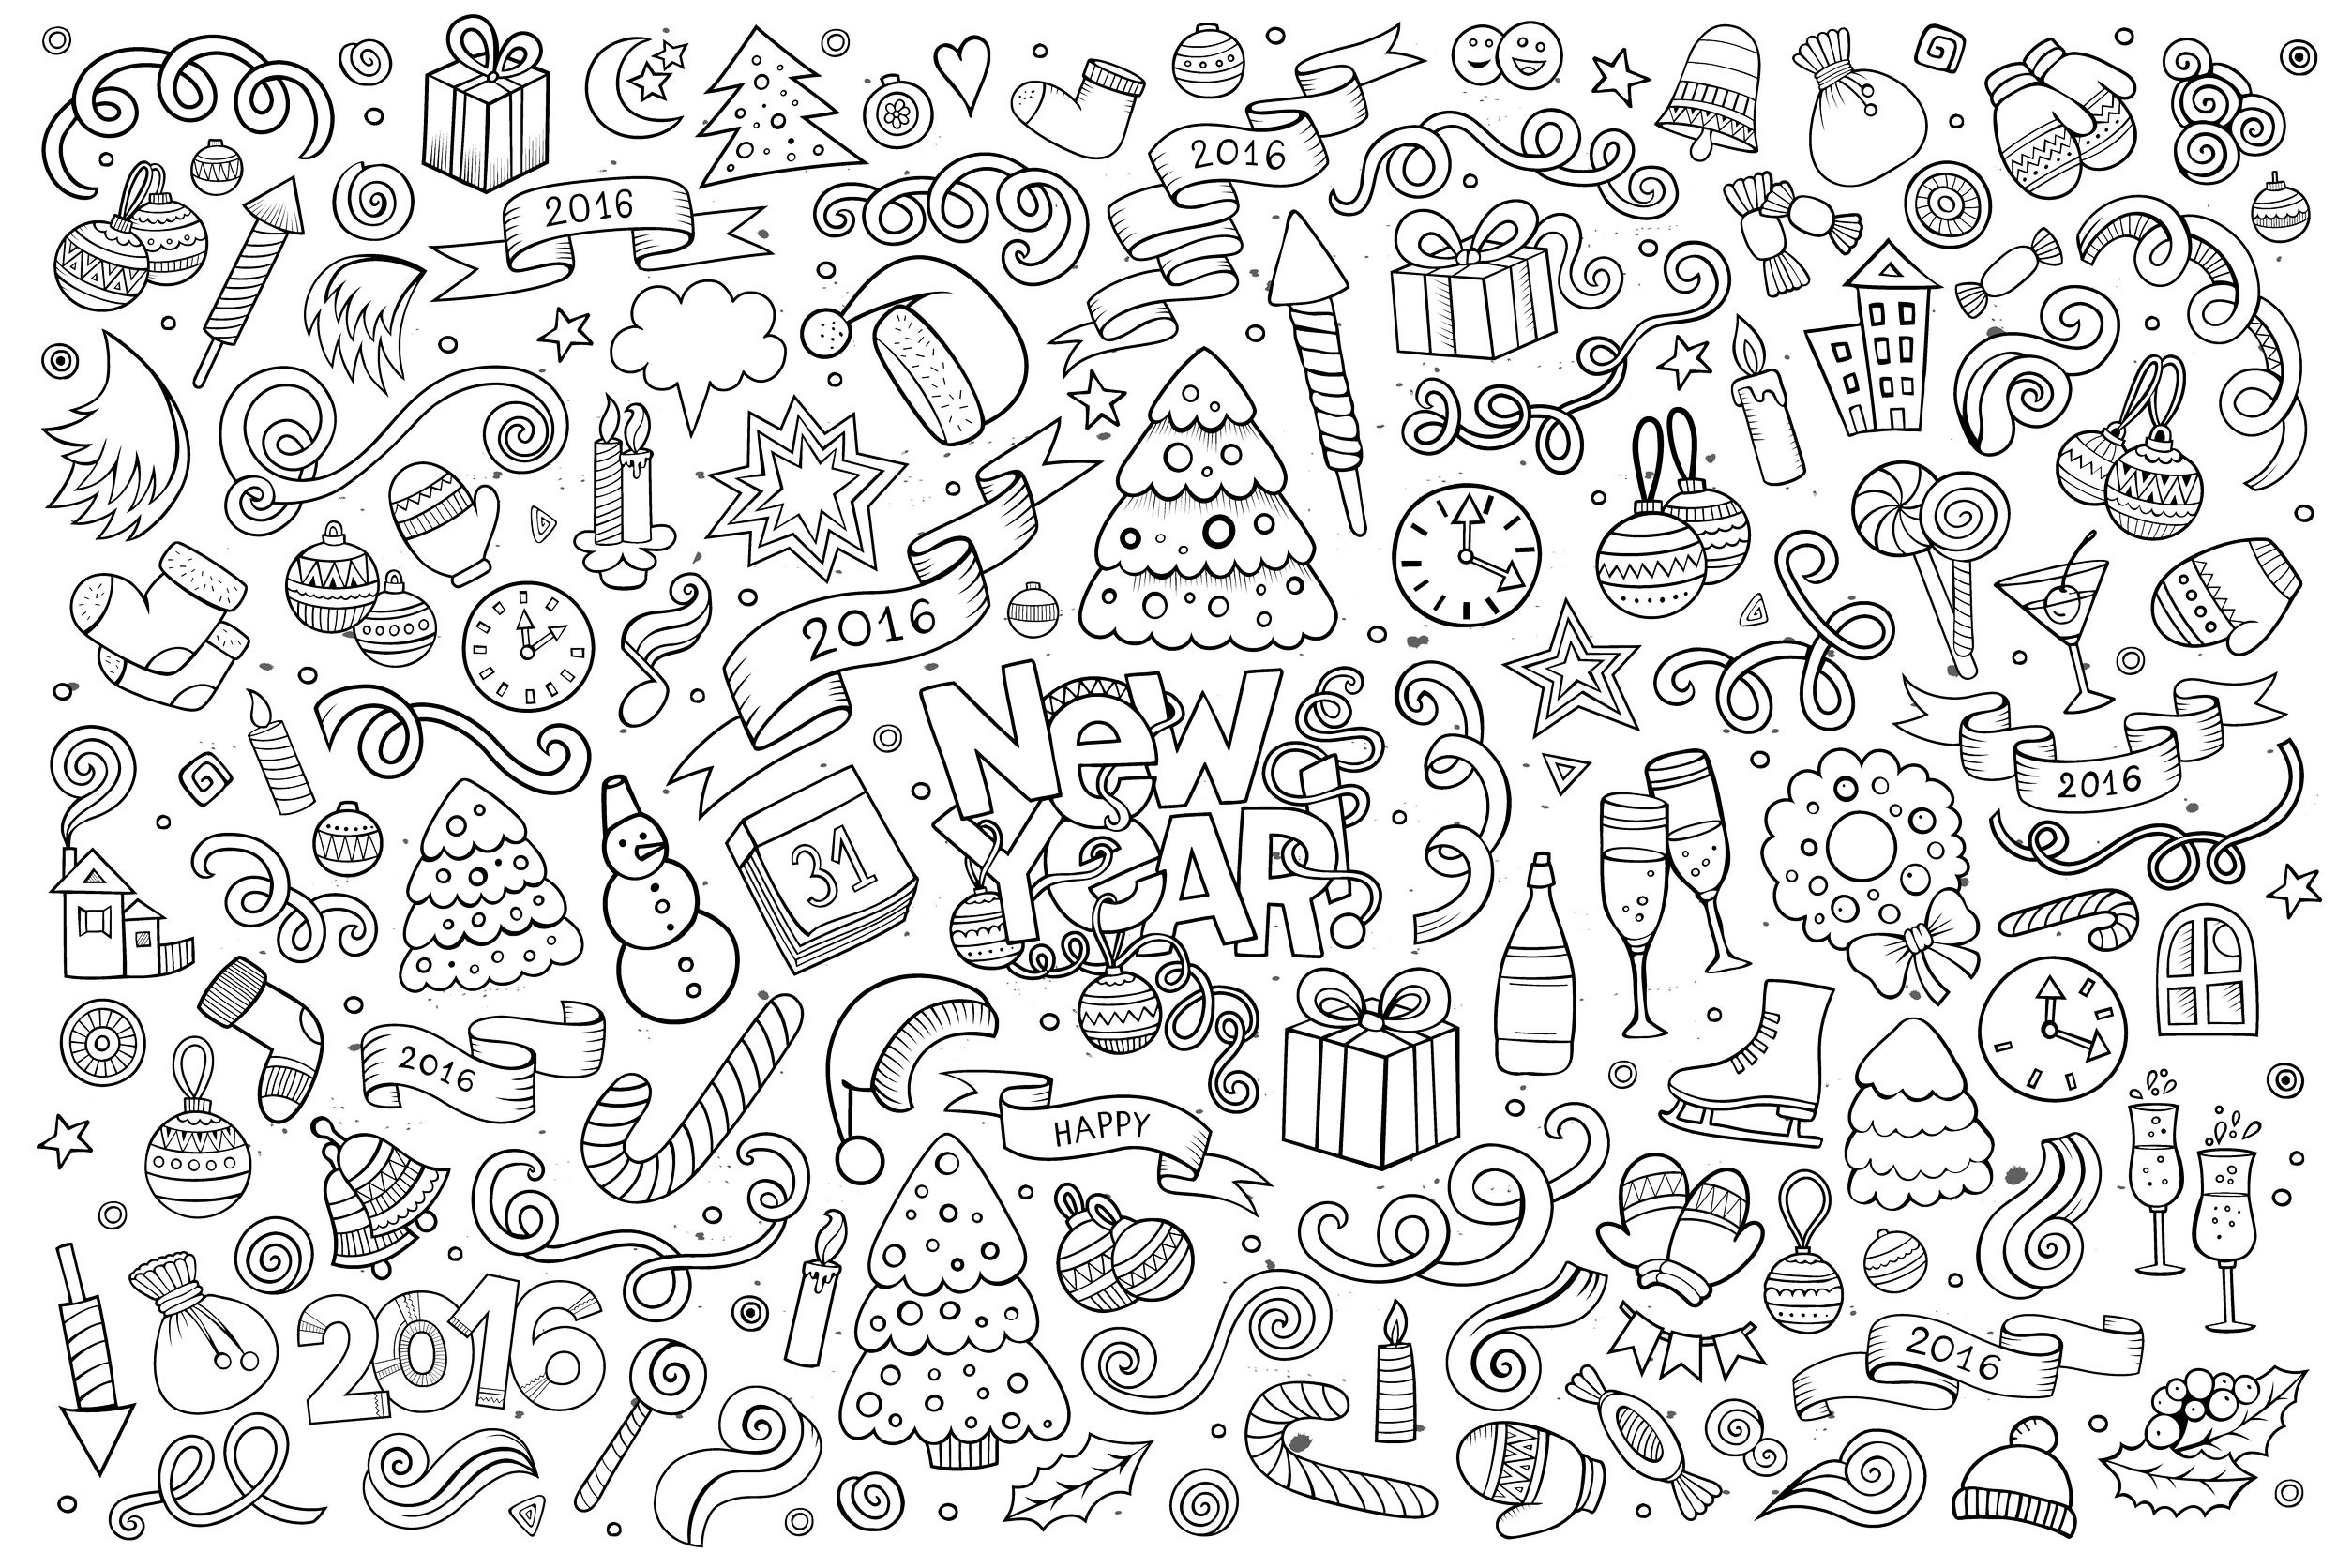 doodle happy new year 2016 by balabolka most recently added